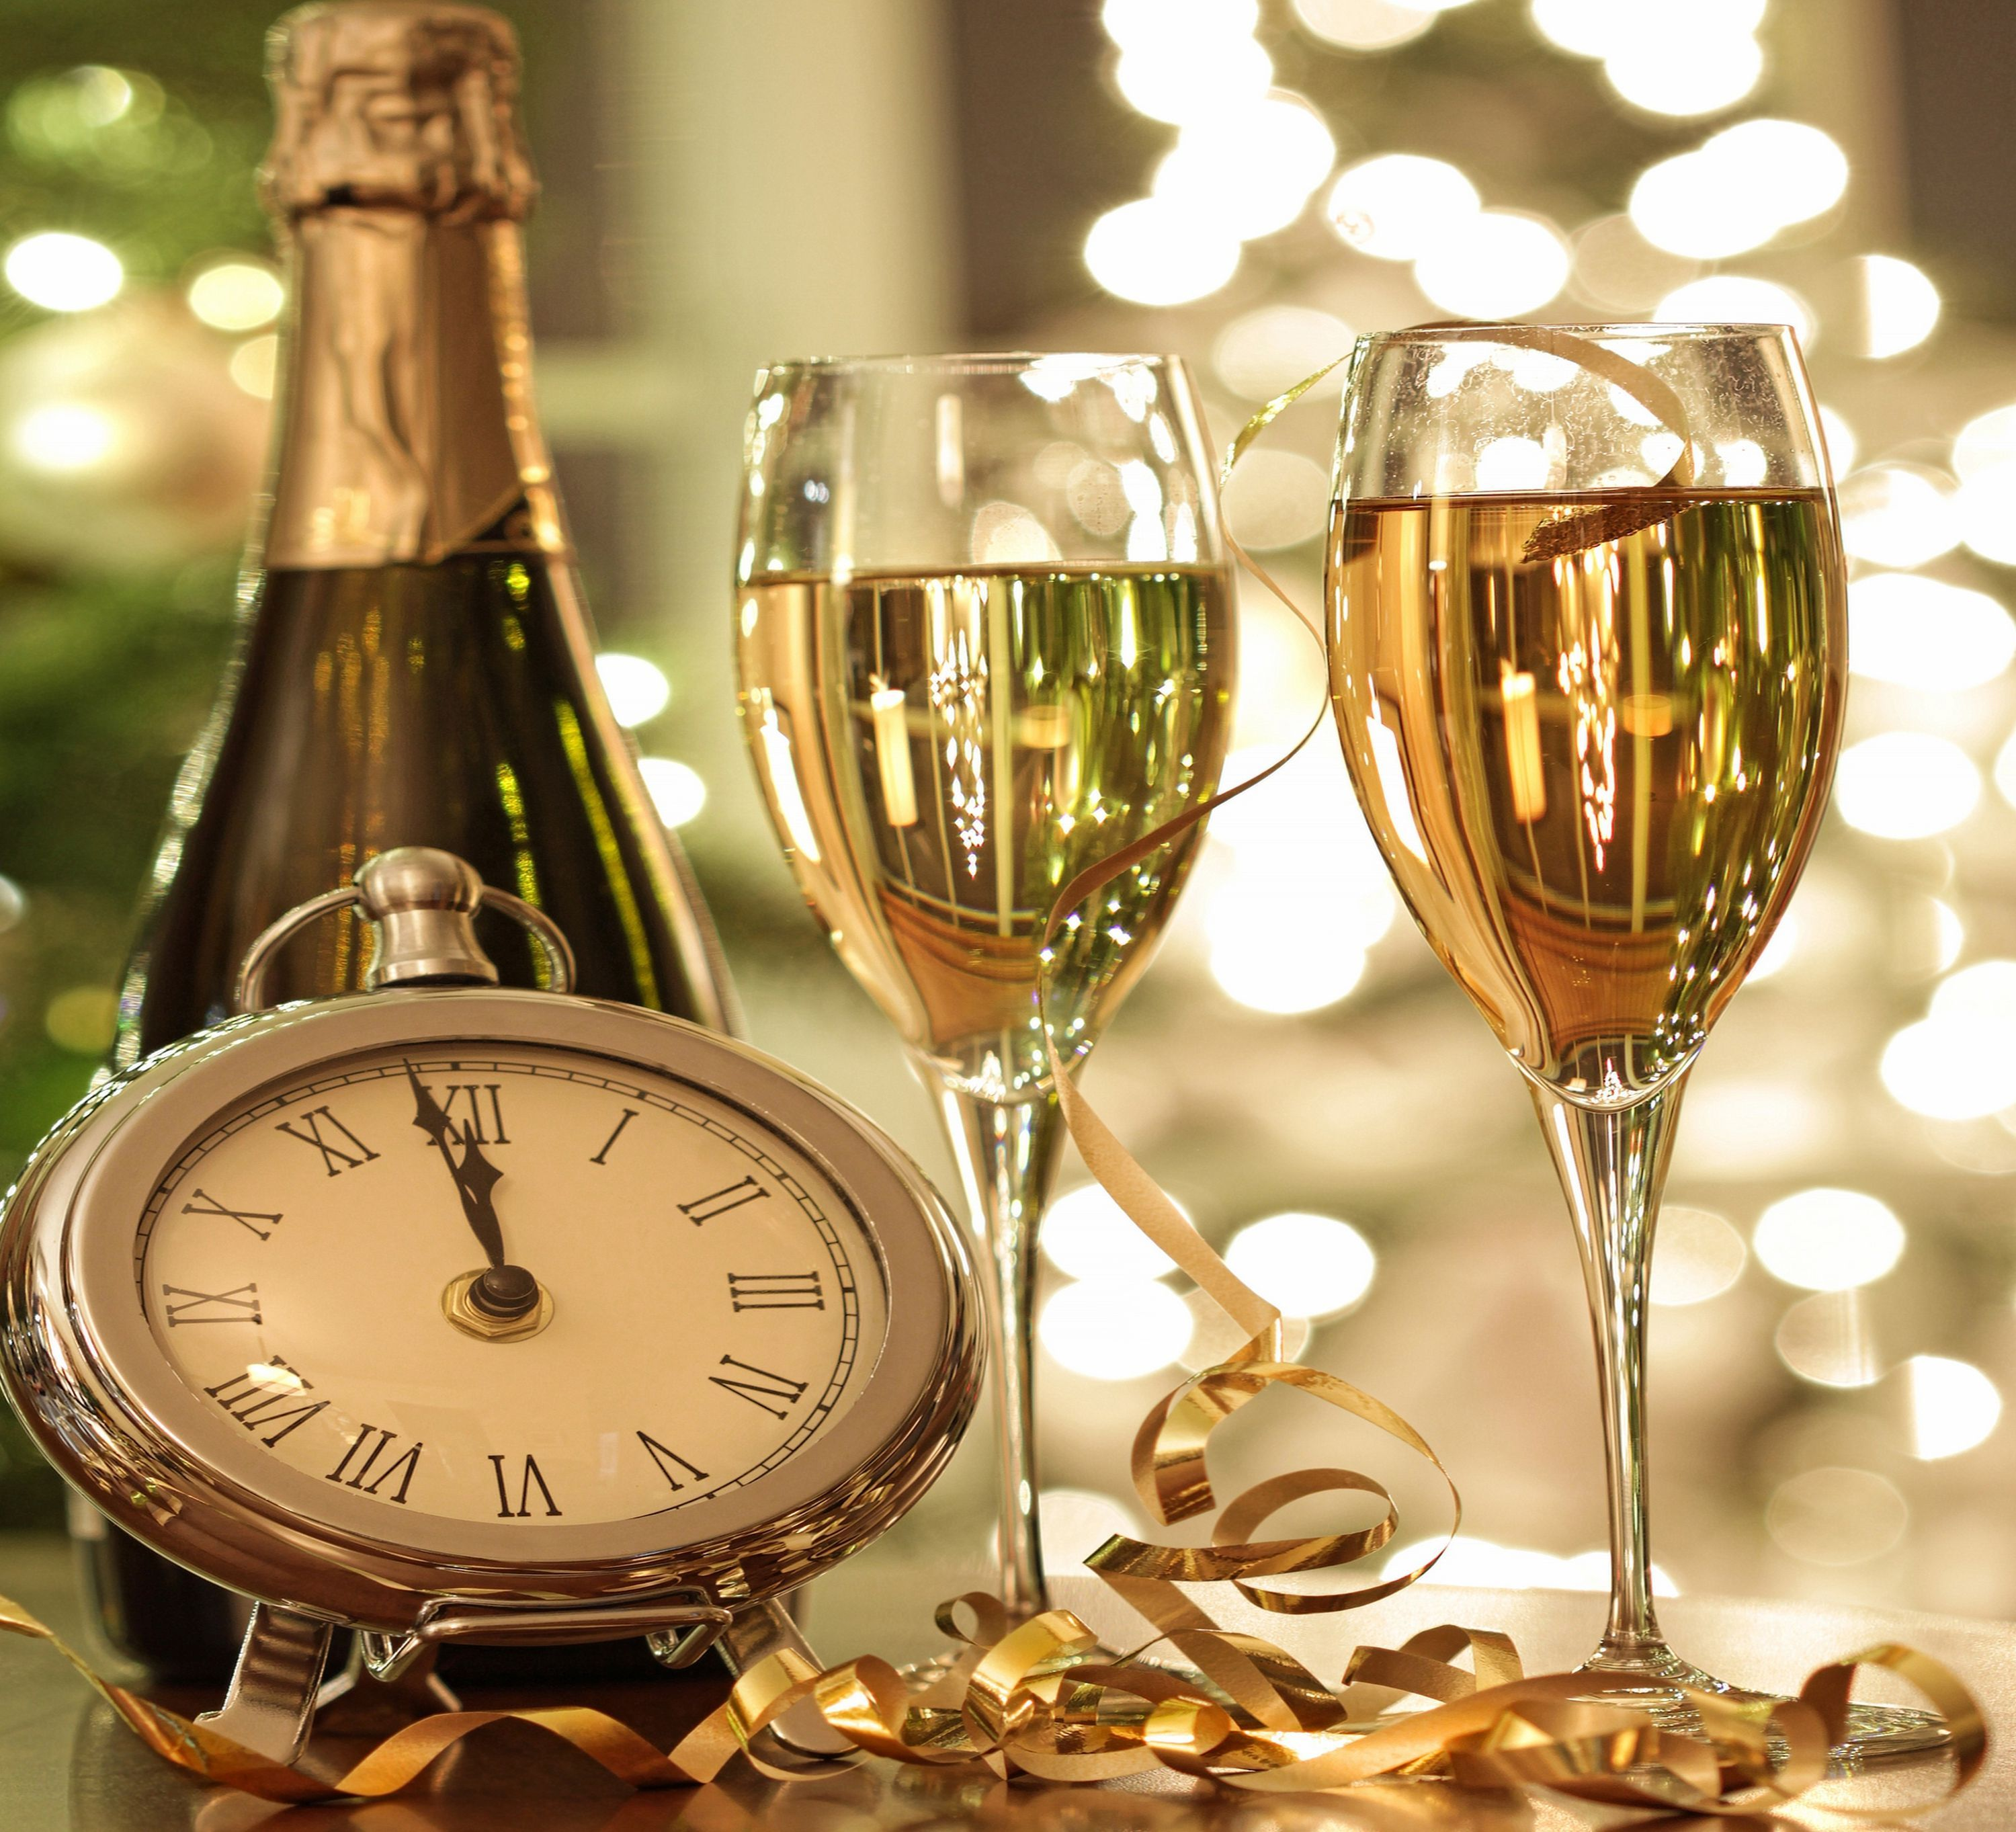 Romantic Things To Do On New Years Eve: How Much New Years Champagne Is Consumed? Http://tipsycat